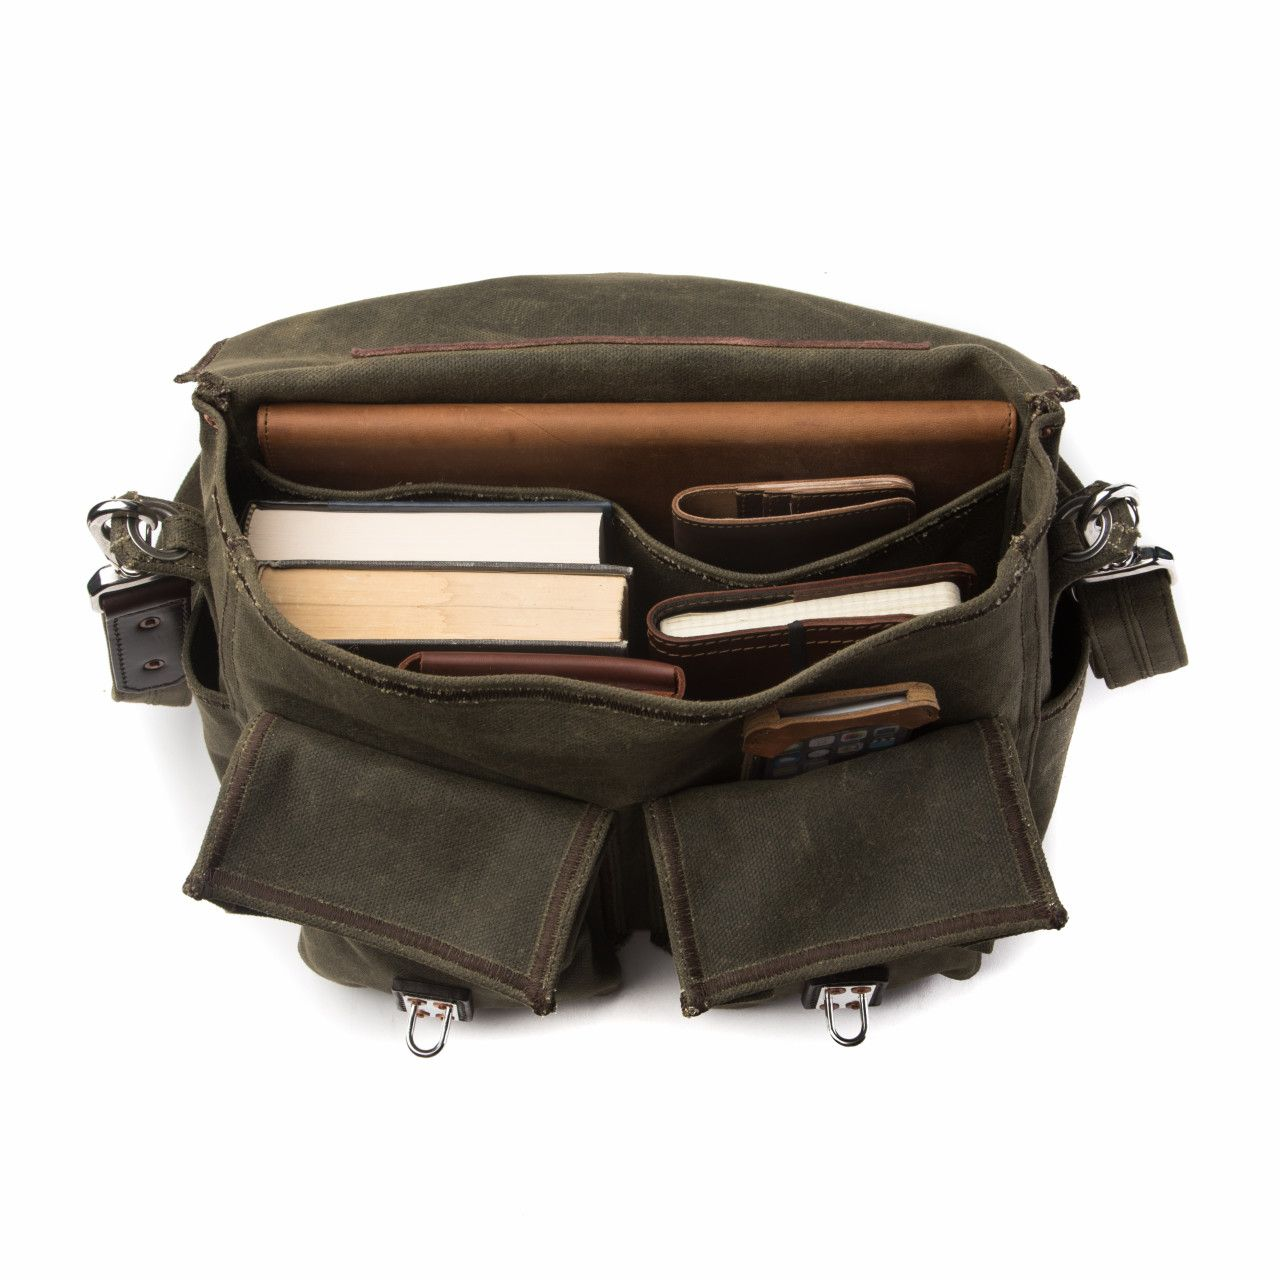 front pocket canvas gear bag medium in moss green canvas with books, wallet and notebook in the interior